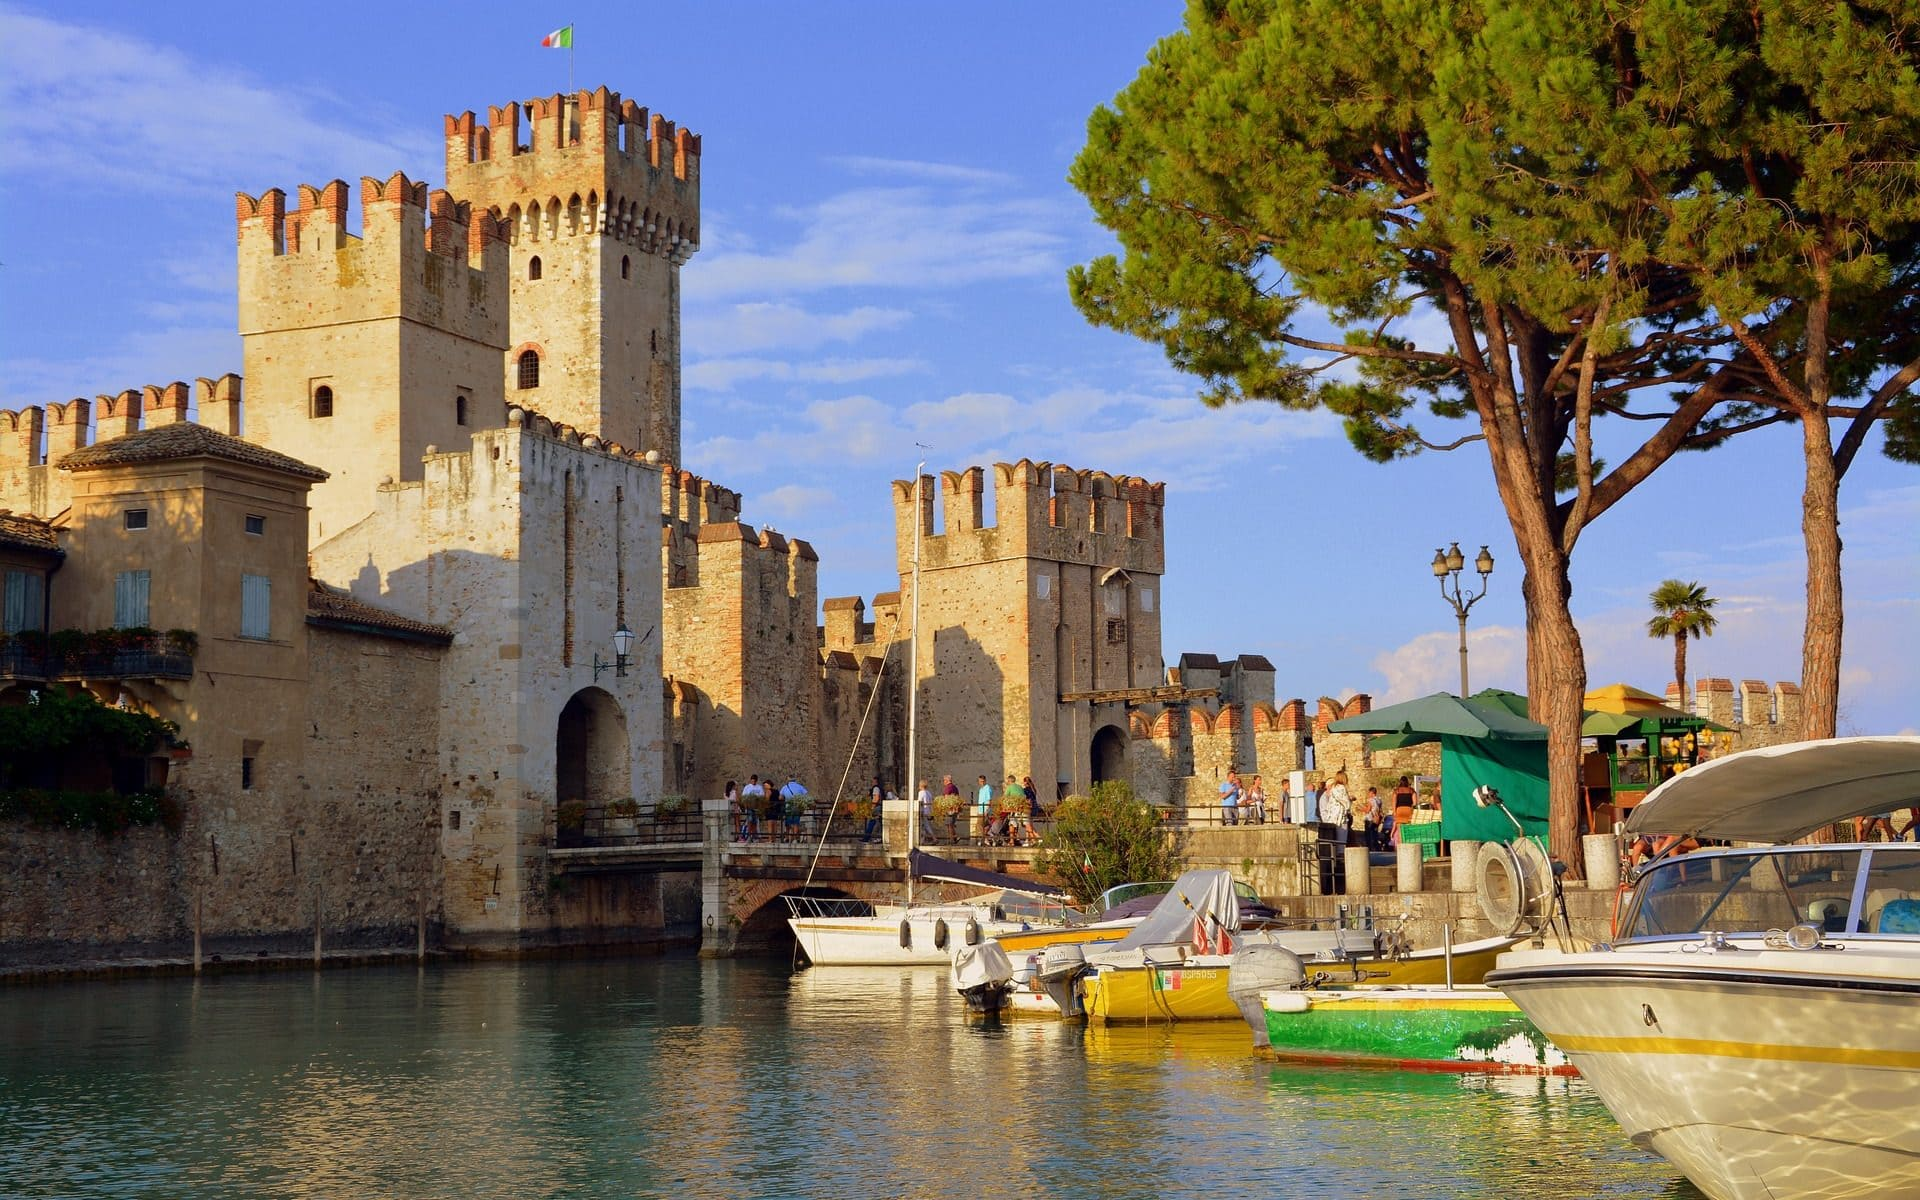 Castle in Sirmione